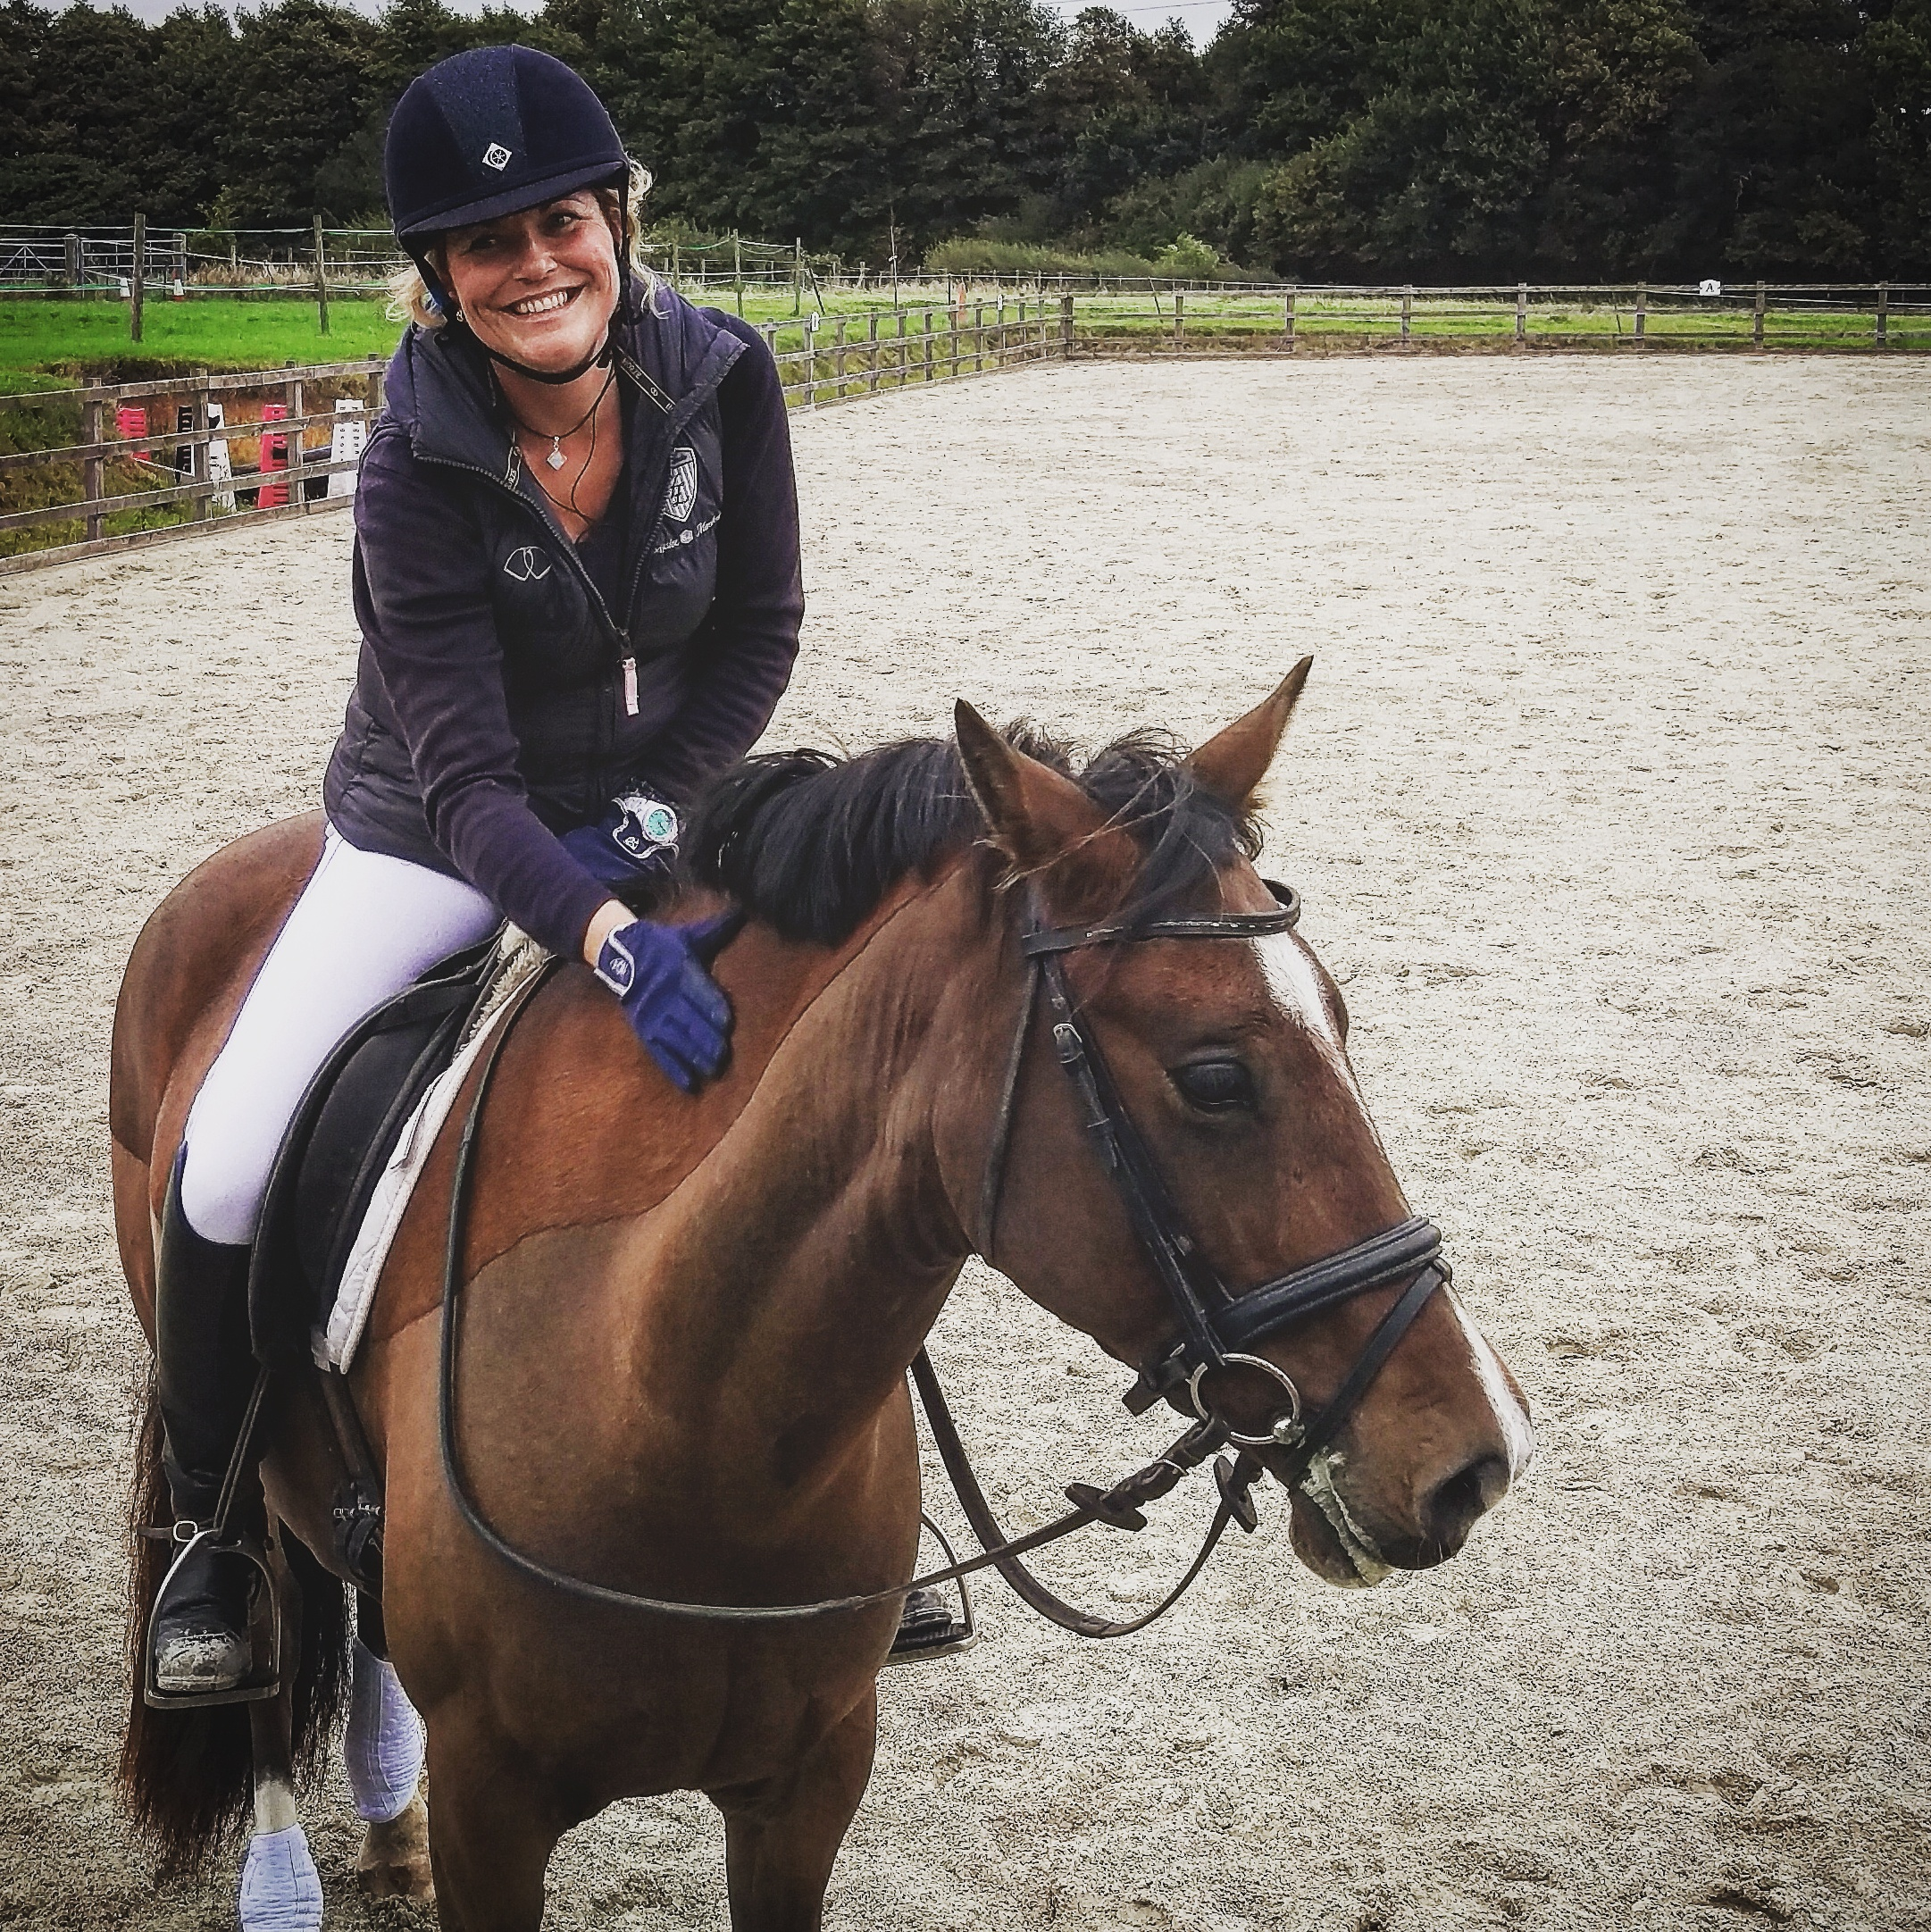 The smile says it all - Sarah is back in the saddle